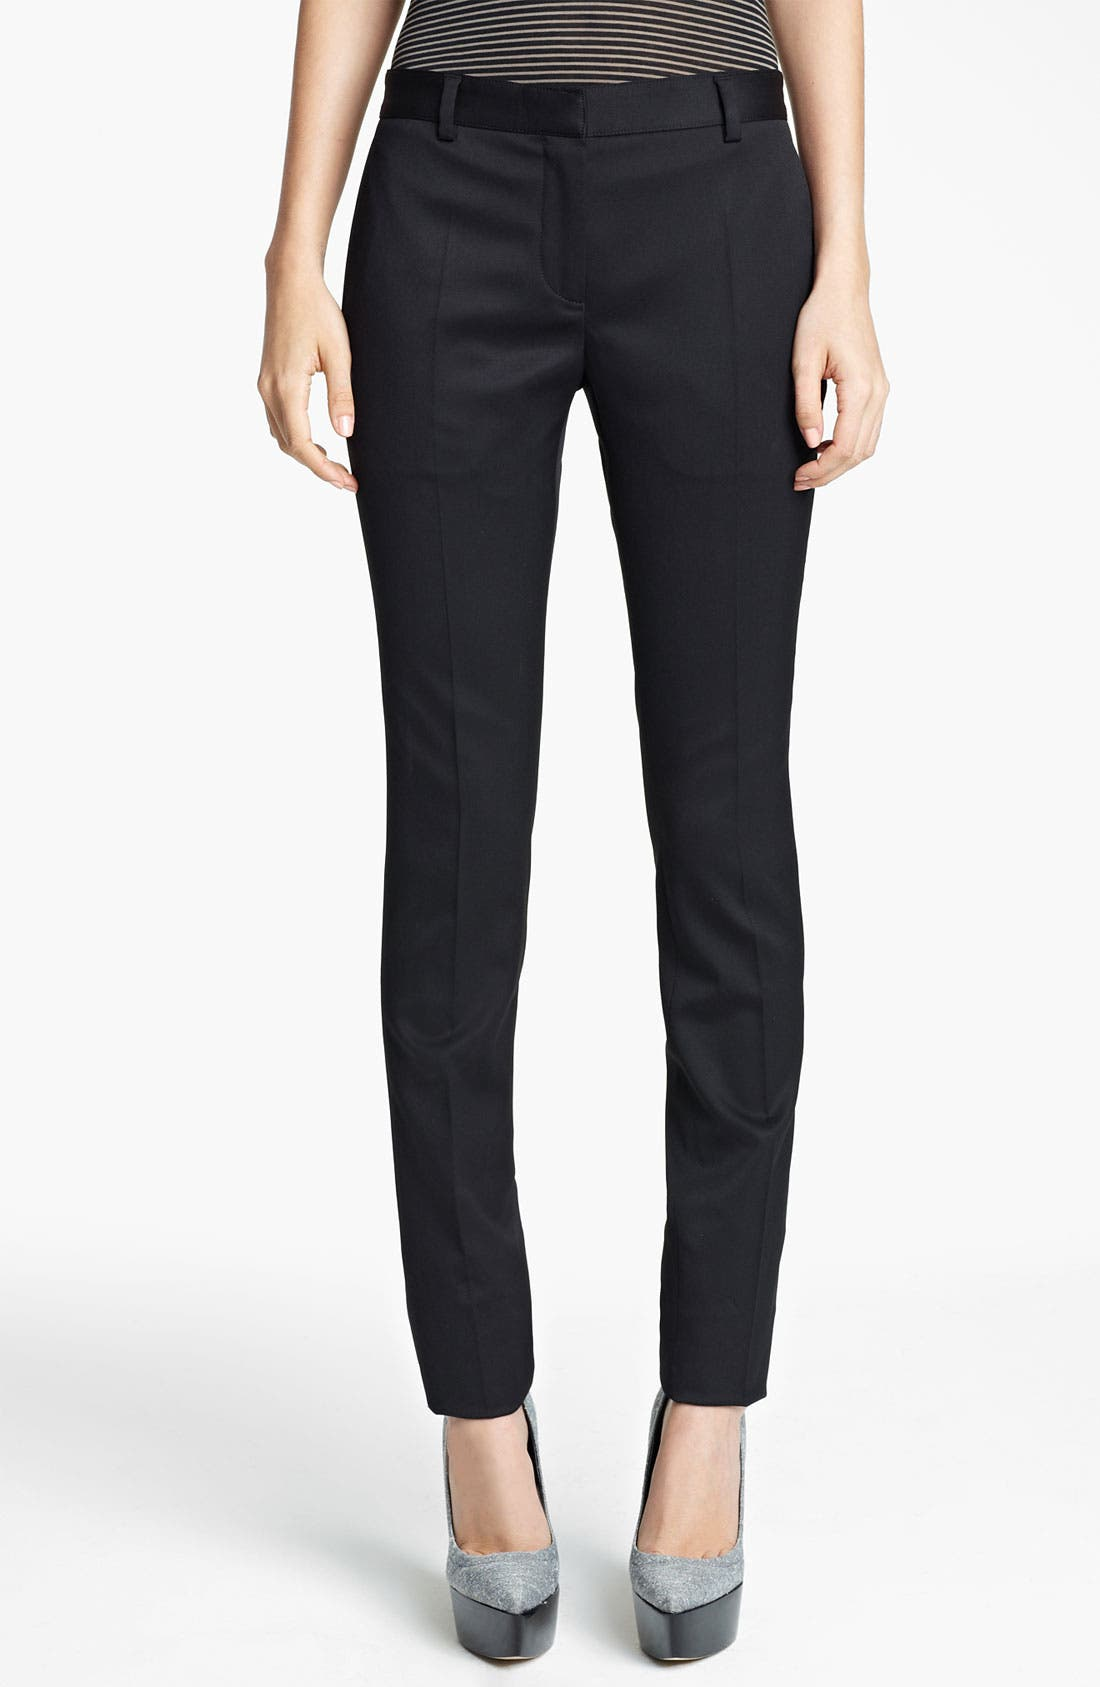 Alternate Image 1 Selected - Burberry Prorsum Skinny Stretch Wool Pants